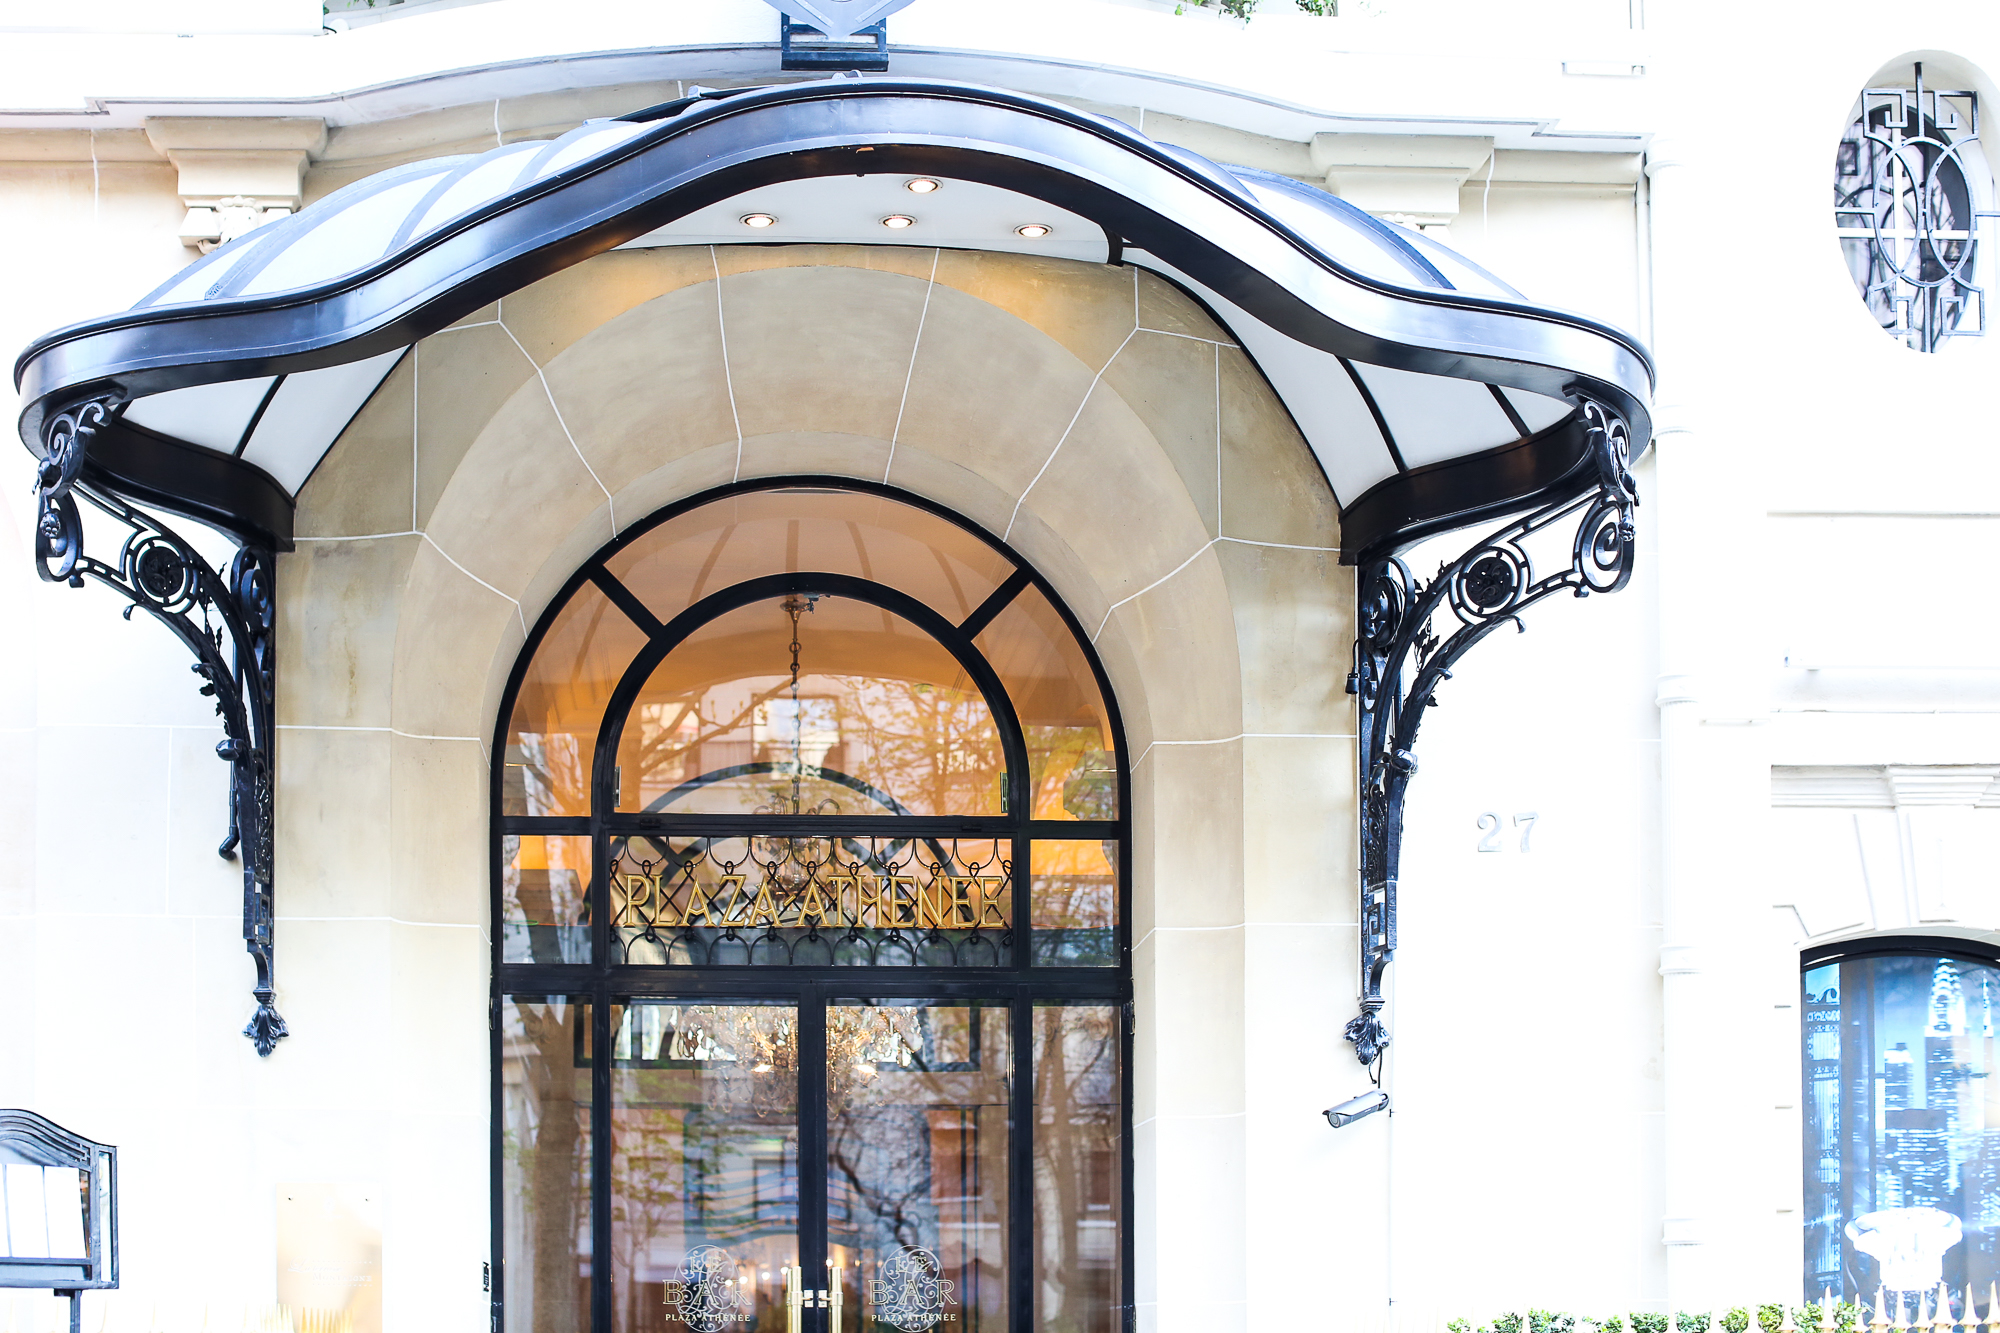 Plaza Athenee Paris-13